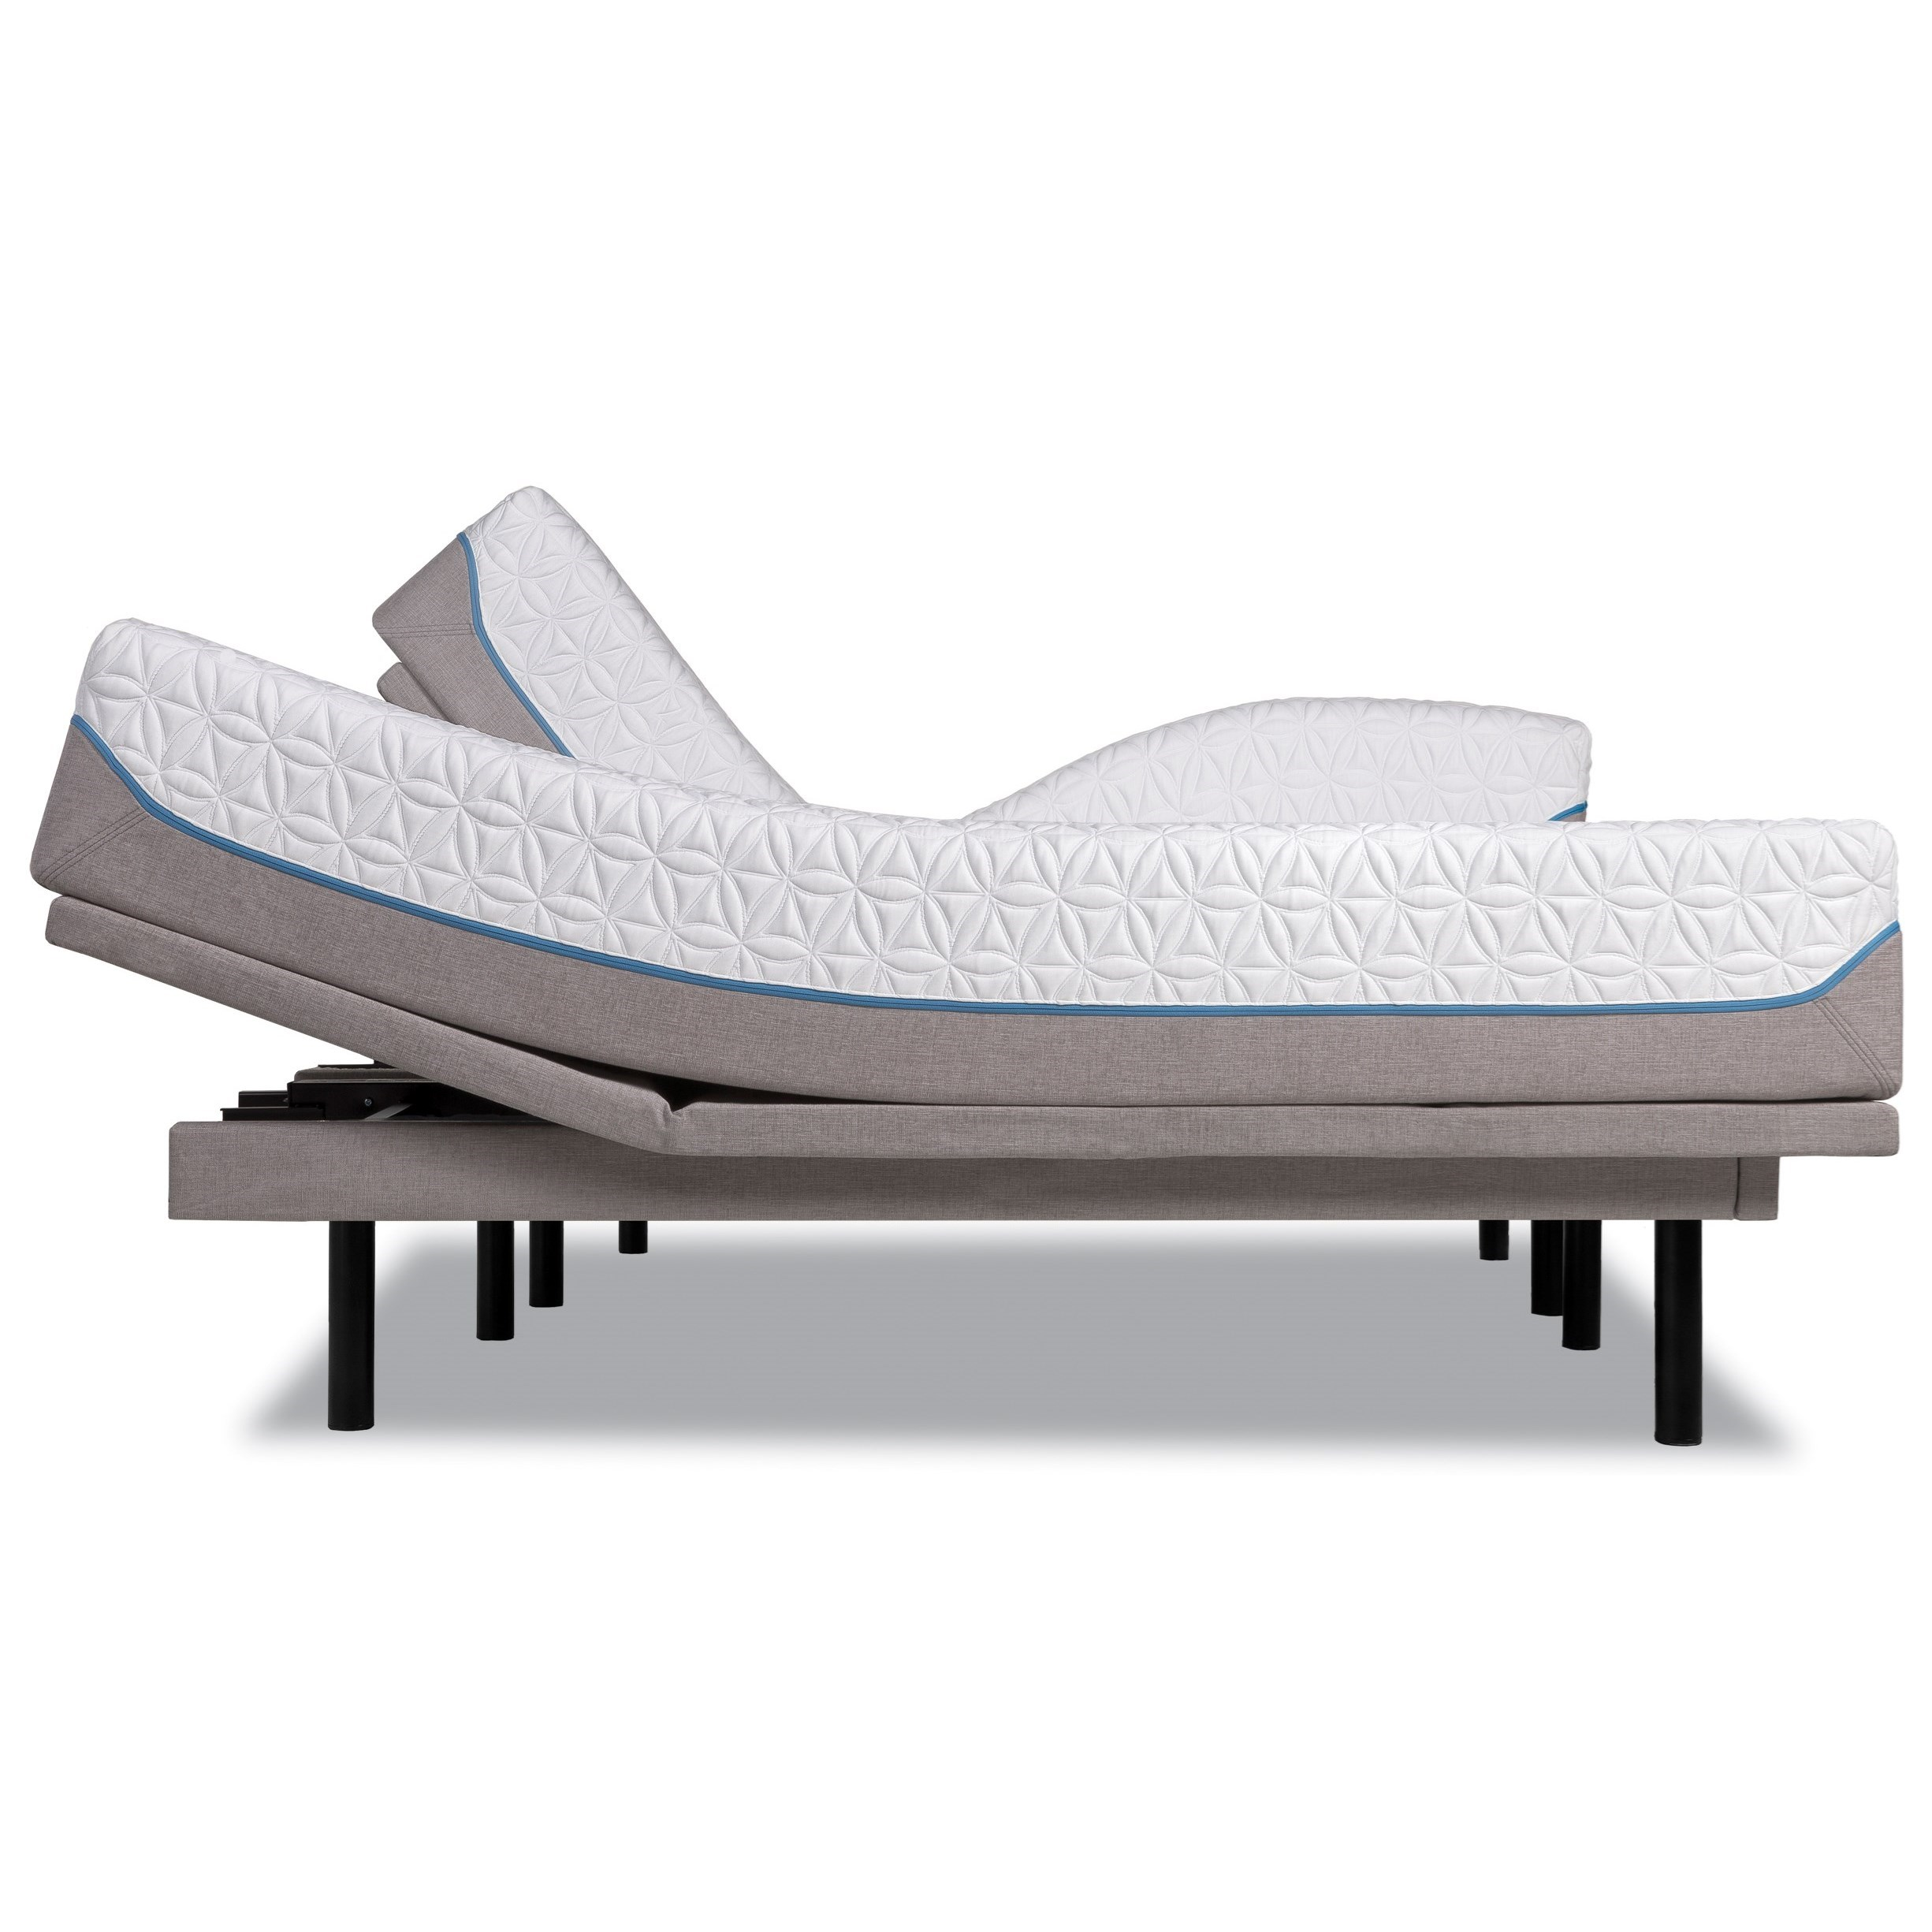 Tempur-Pedic® TEMPUR-Cloud Supreme Twin XL Soft Mattress Set - Item Number: 10240220+25289220